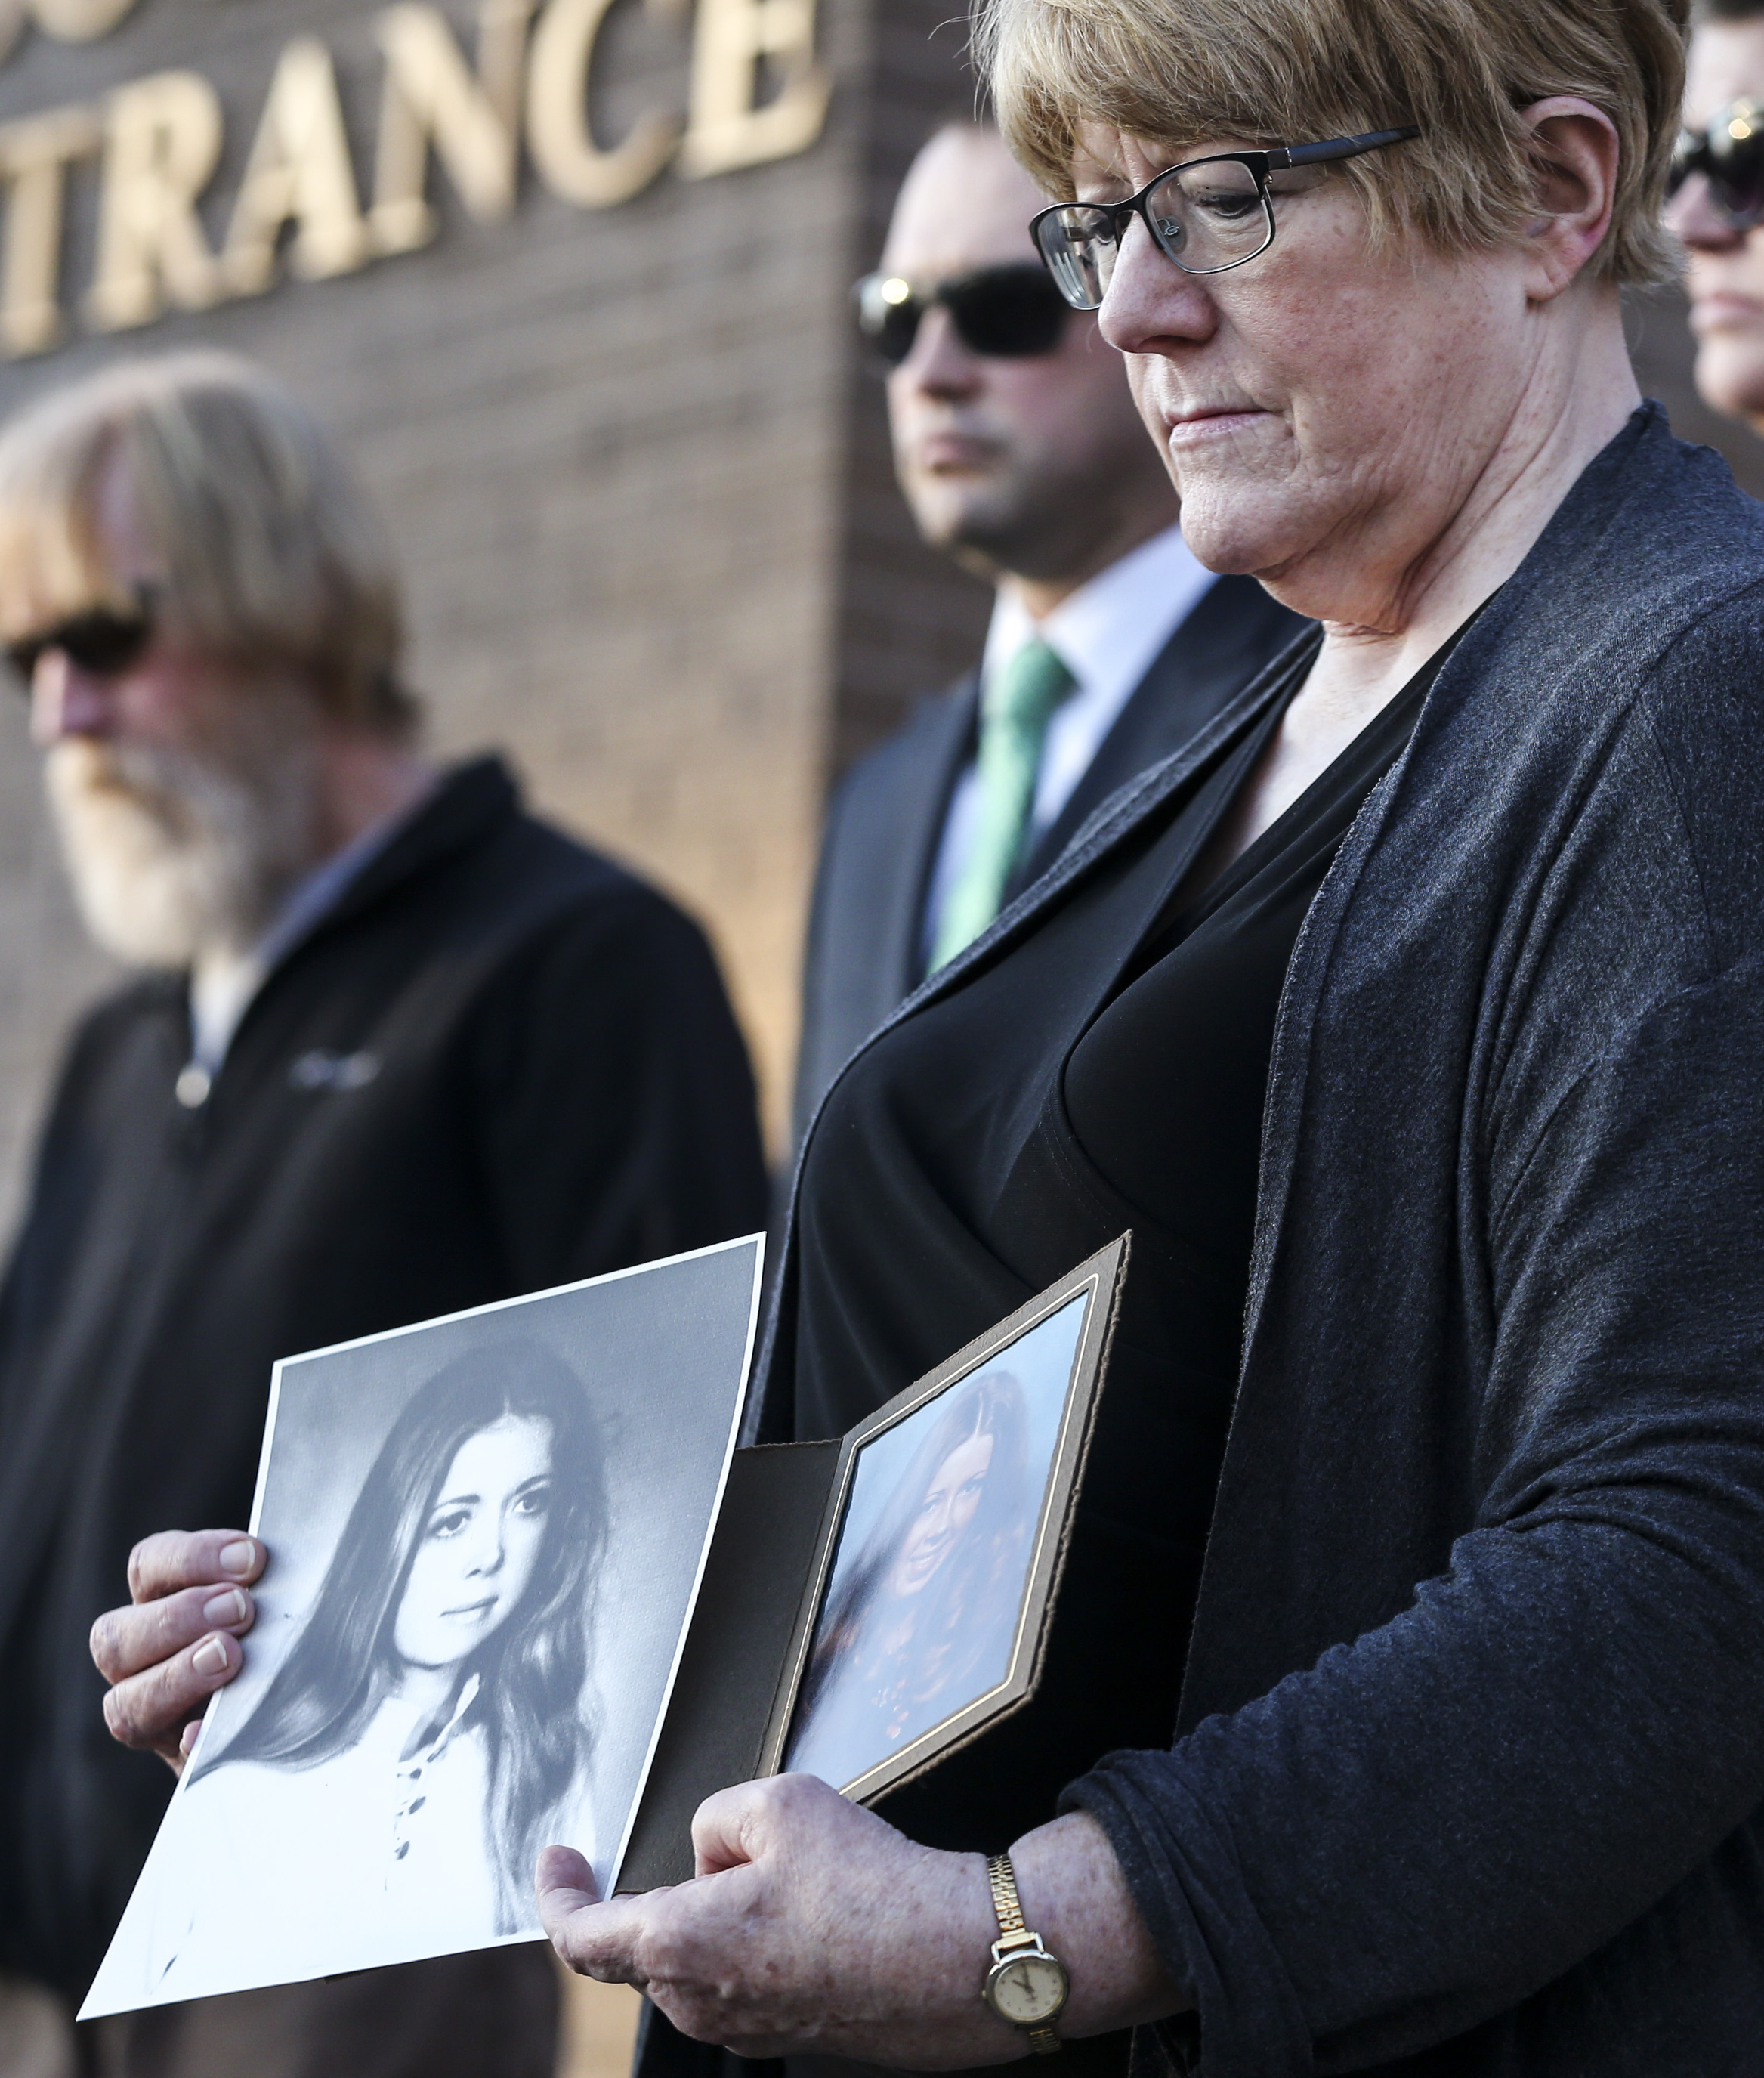 Leah Scharp displays pictures of her sister, Marla Scharp, during a press conference at the Provo Police Department in Provo on Saturday, Nov. 16, 2019, where the Utah Cold Case Coalition announced Marla Scharp's murder case is being reopened. Marla Scharp's body was discovered in her home in June 1978. The case was closed in 1984 when Henry Lee Lucas confessed to the murder, but Lucas' confession has since been debunked.